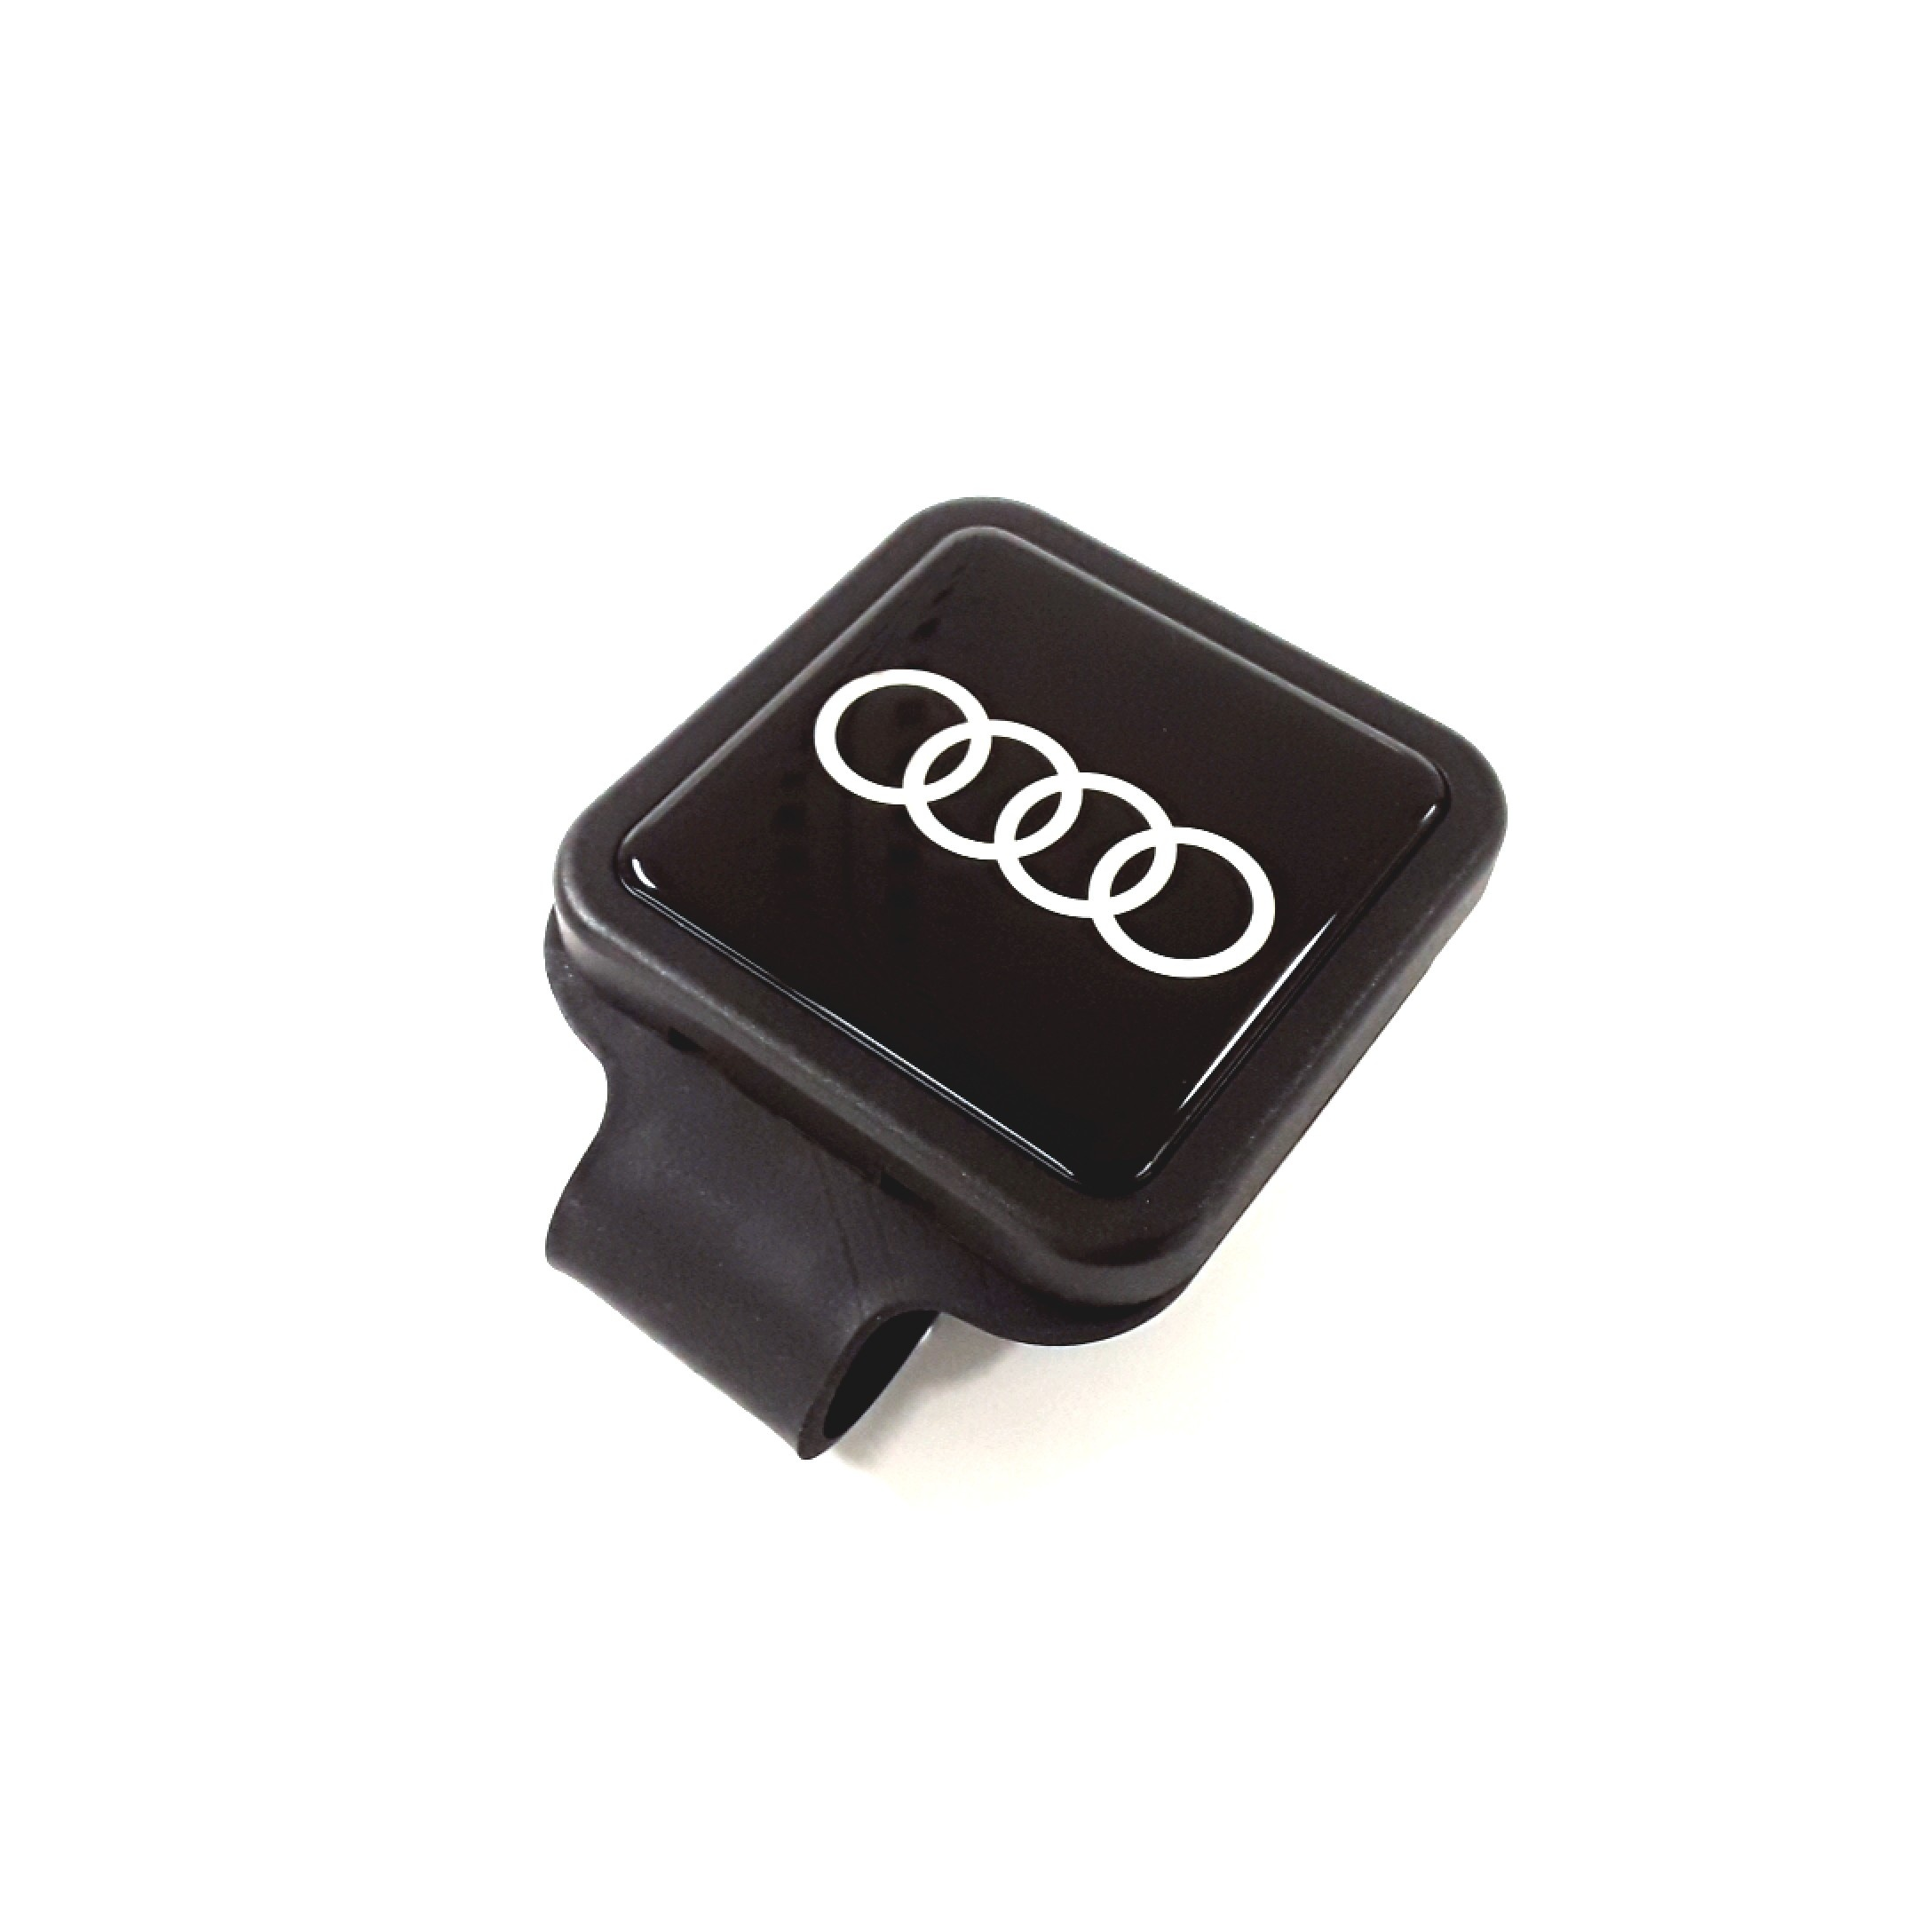 Audi Q7 Trailer Hitch Cover. Updated, Transport, PDress